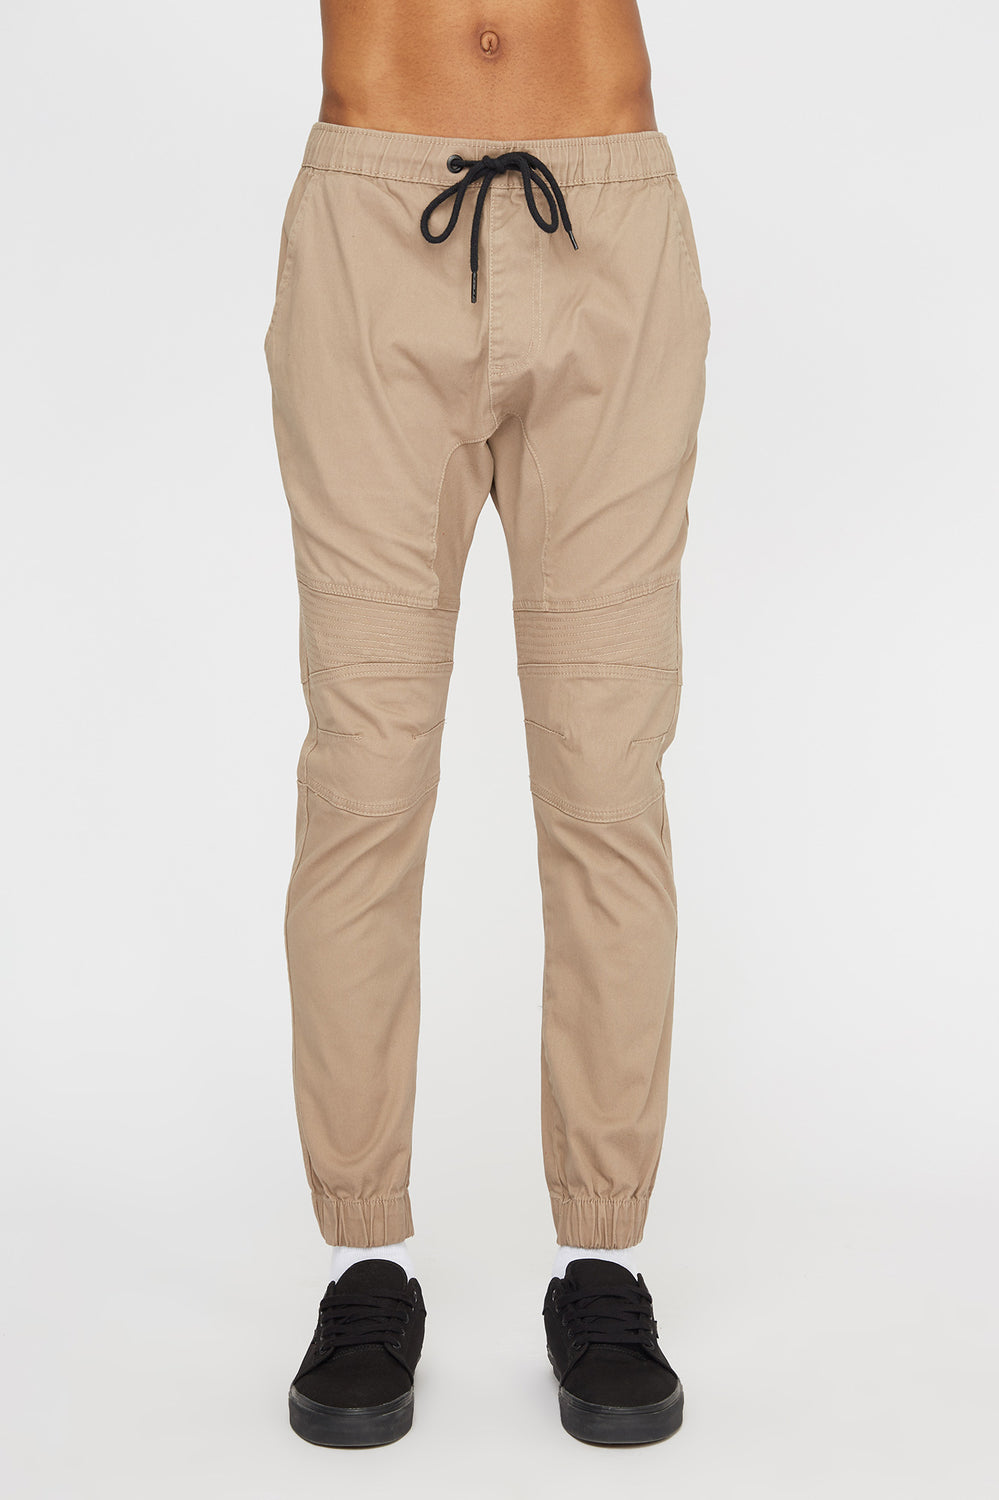 West49 Mens Moto Jogger Sand